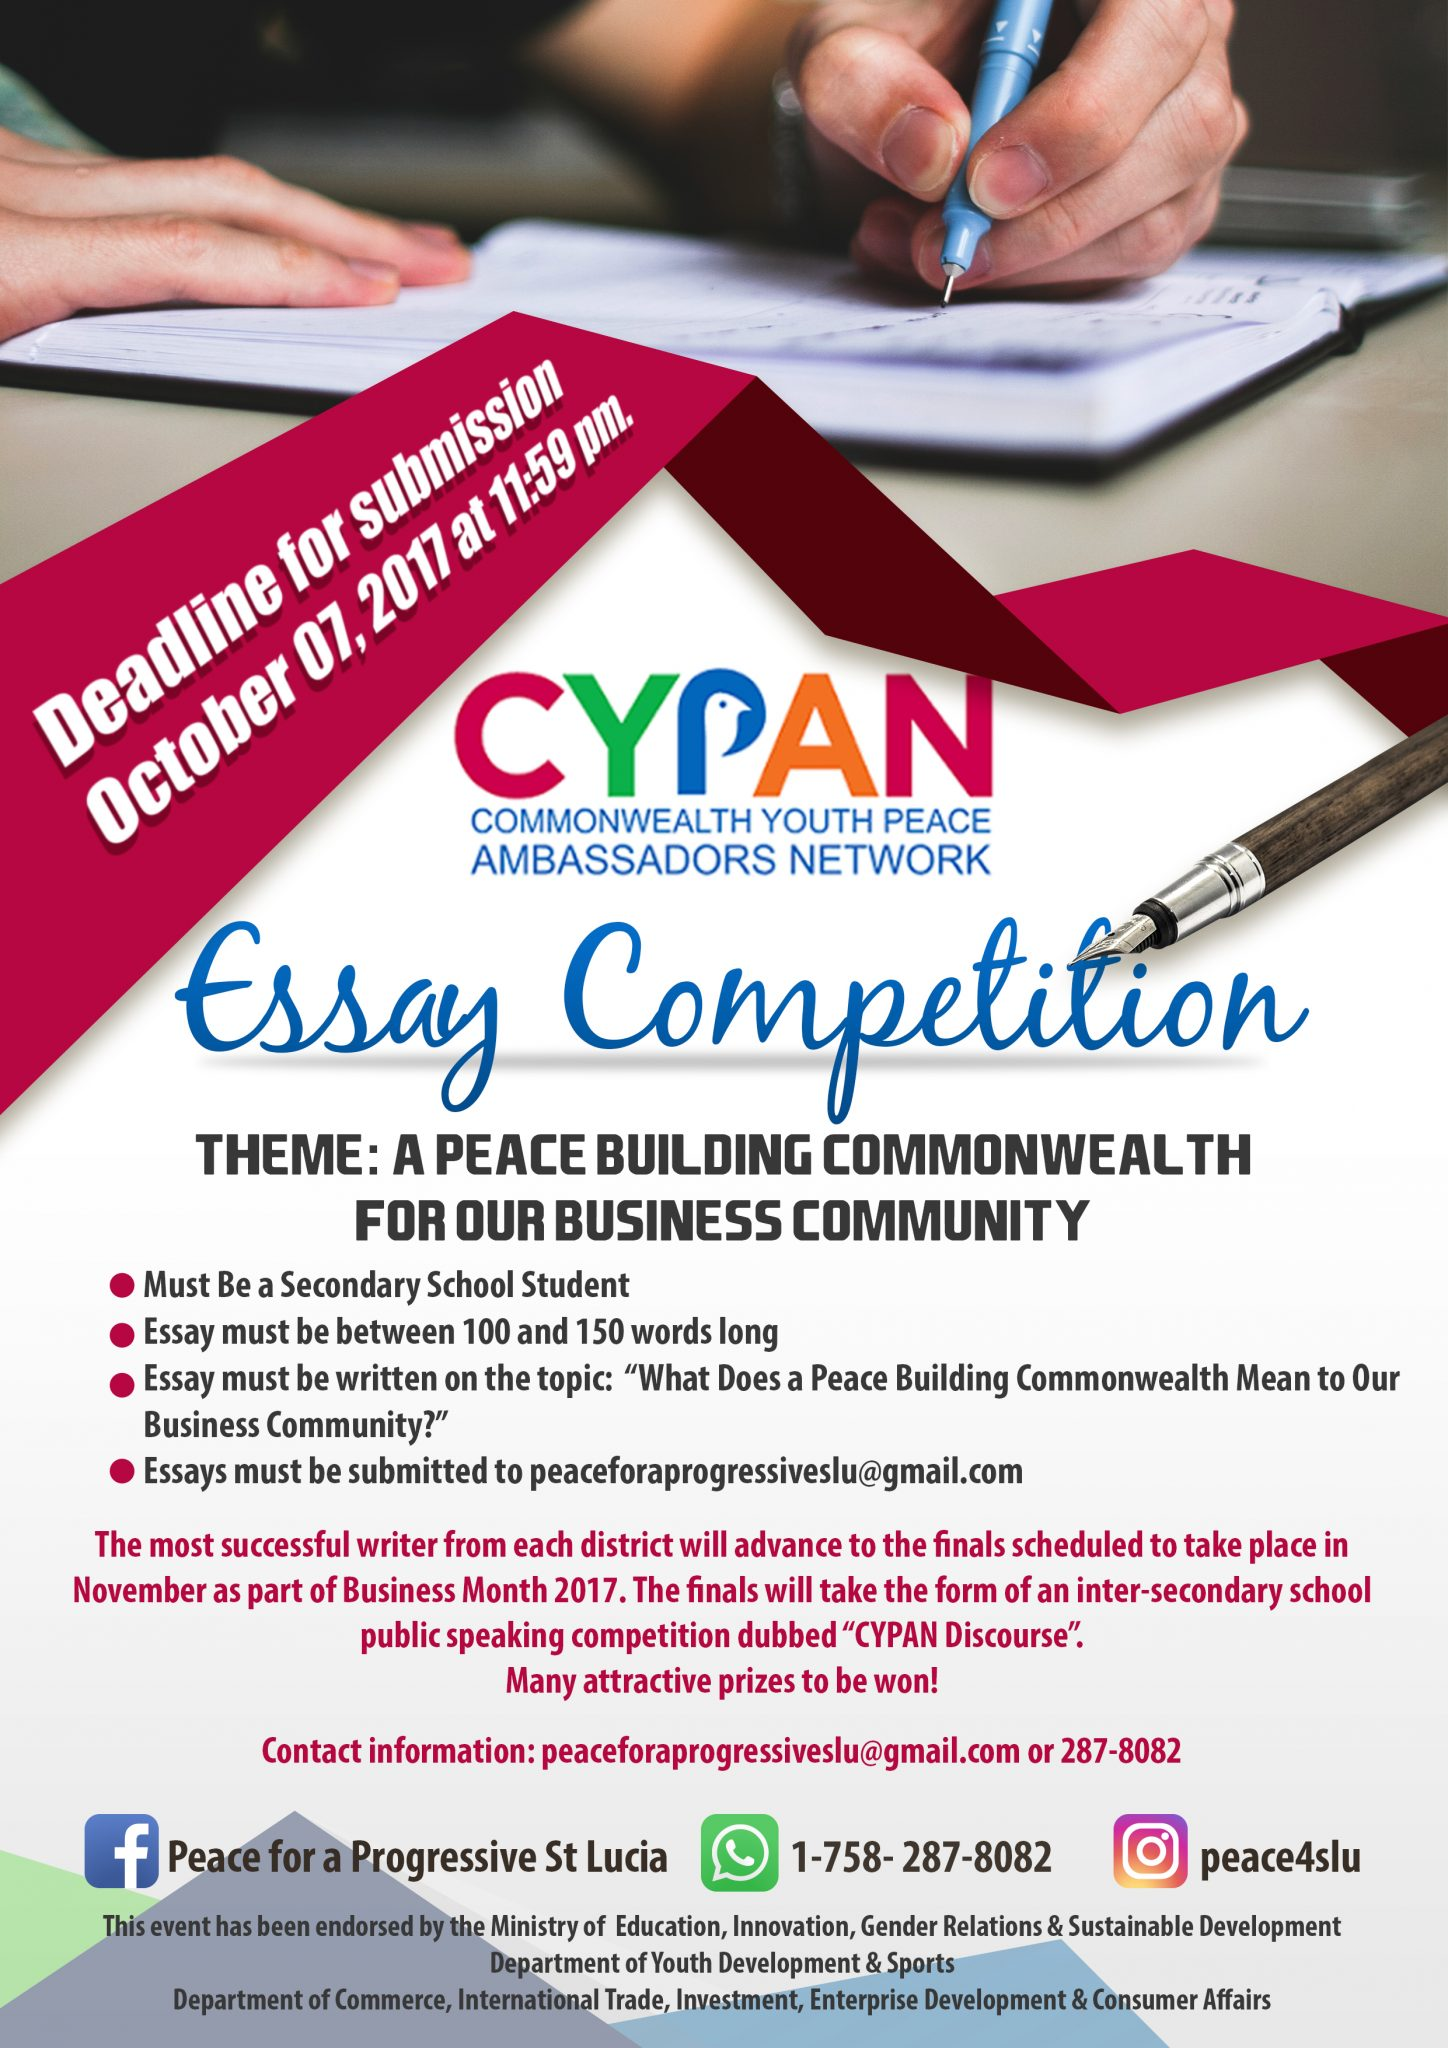 Foreign Service Youth Foundation - Essay Contest